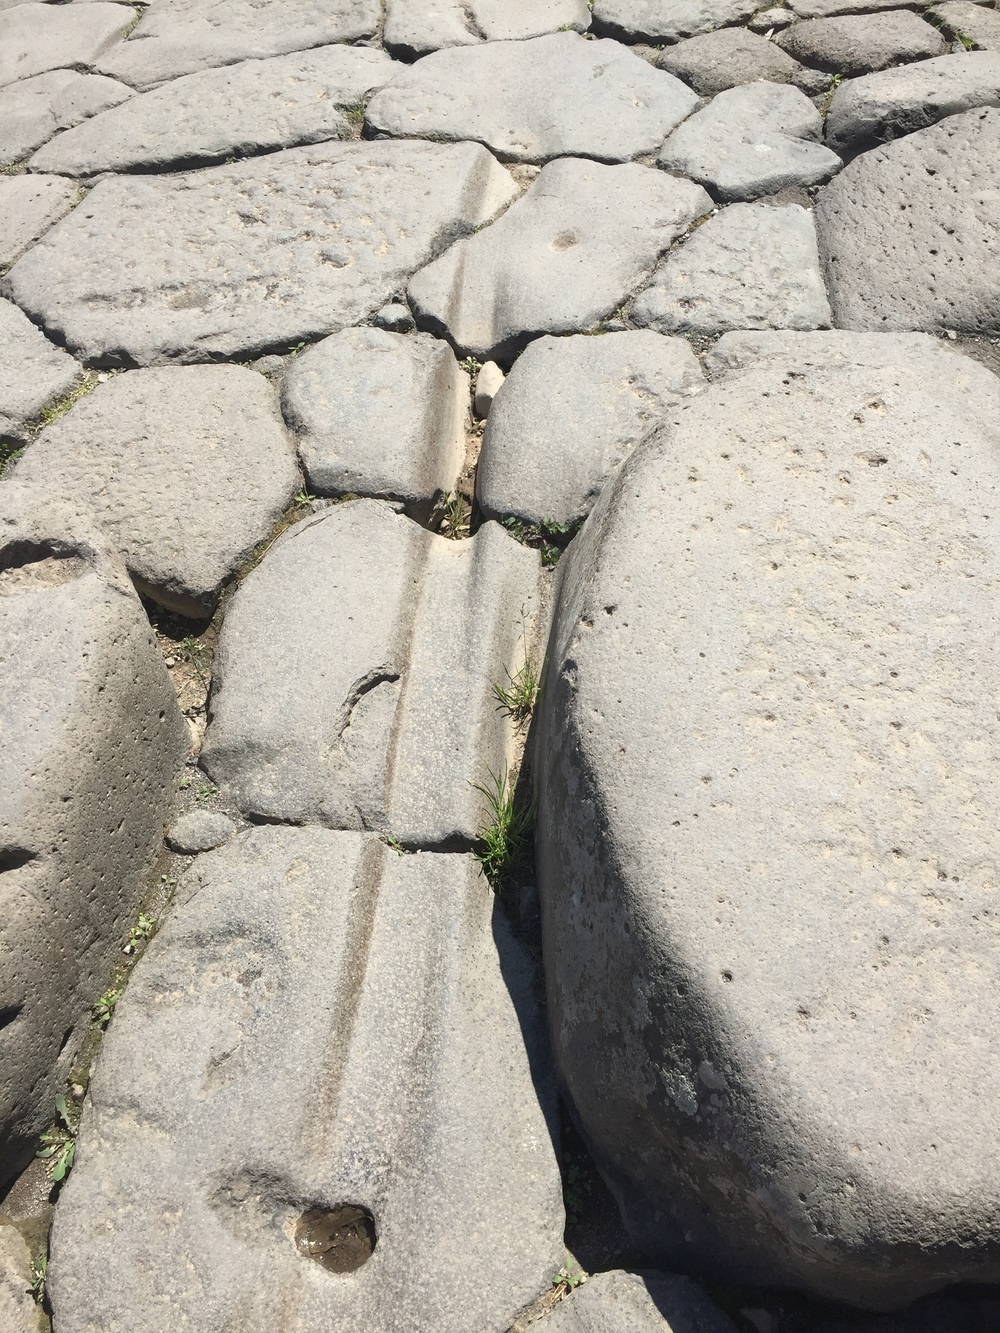 Ruts worn in the paving stones by carts over the years